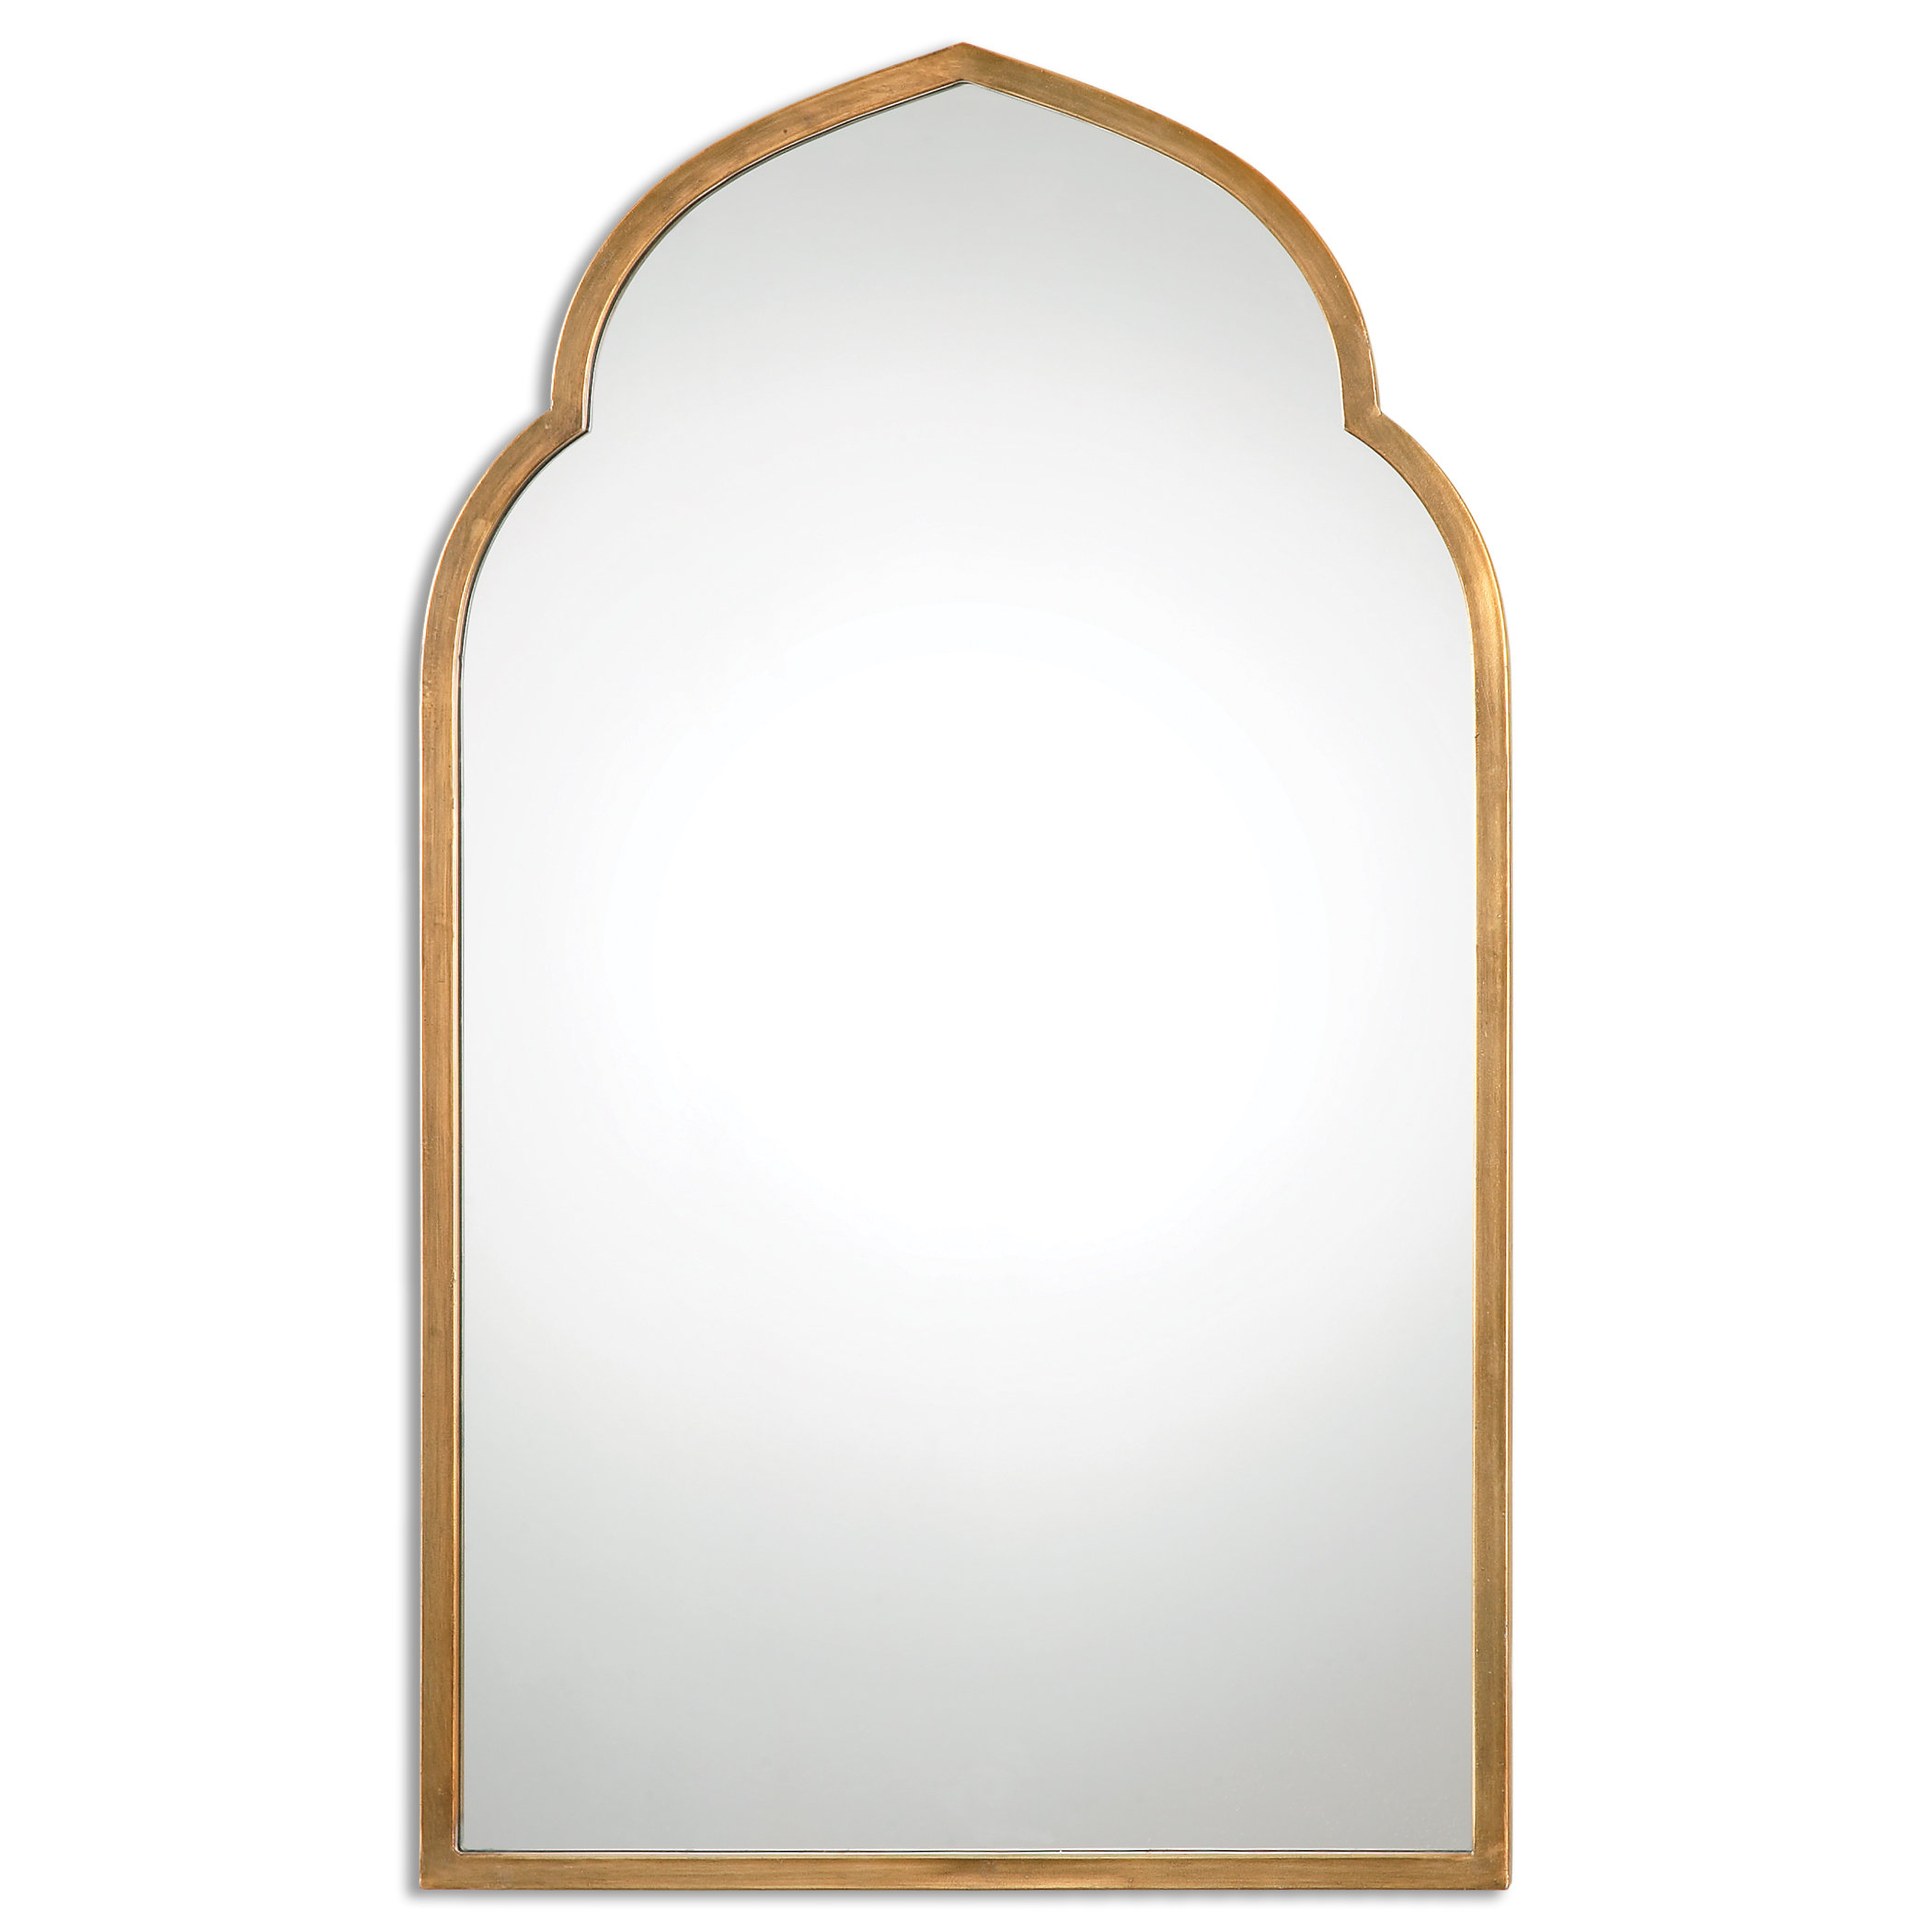 Gold Arch Wall Mirror & Reviews | Joss & Main Within Fifi Contemporary Arch Wall Mirrors (View 11 of 20)